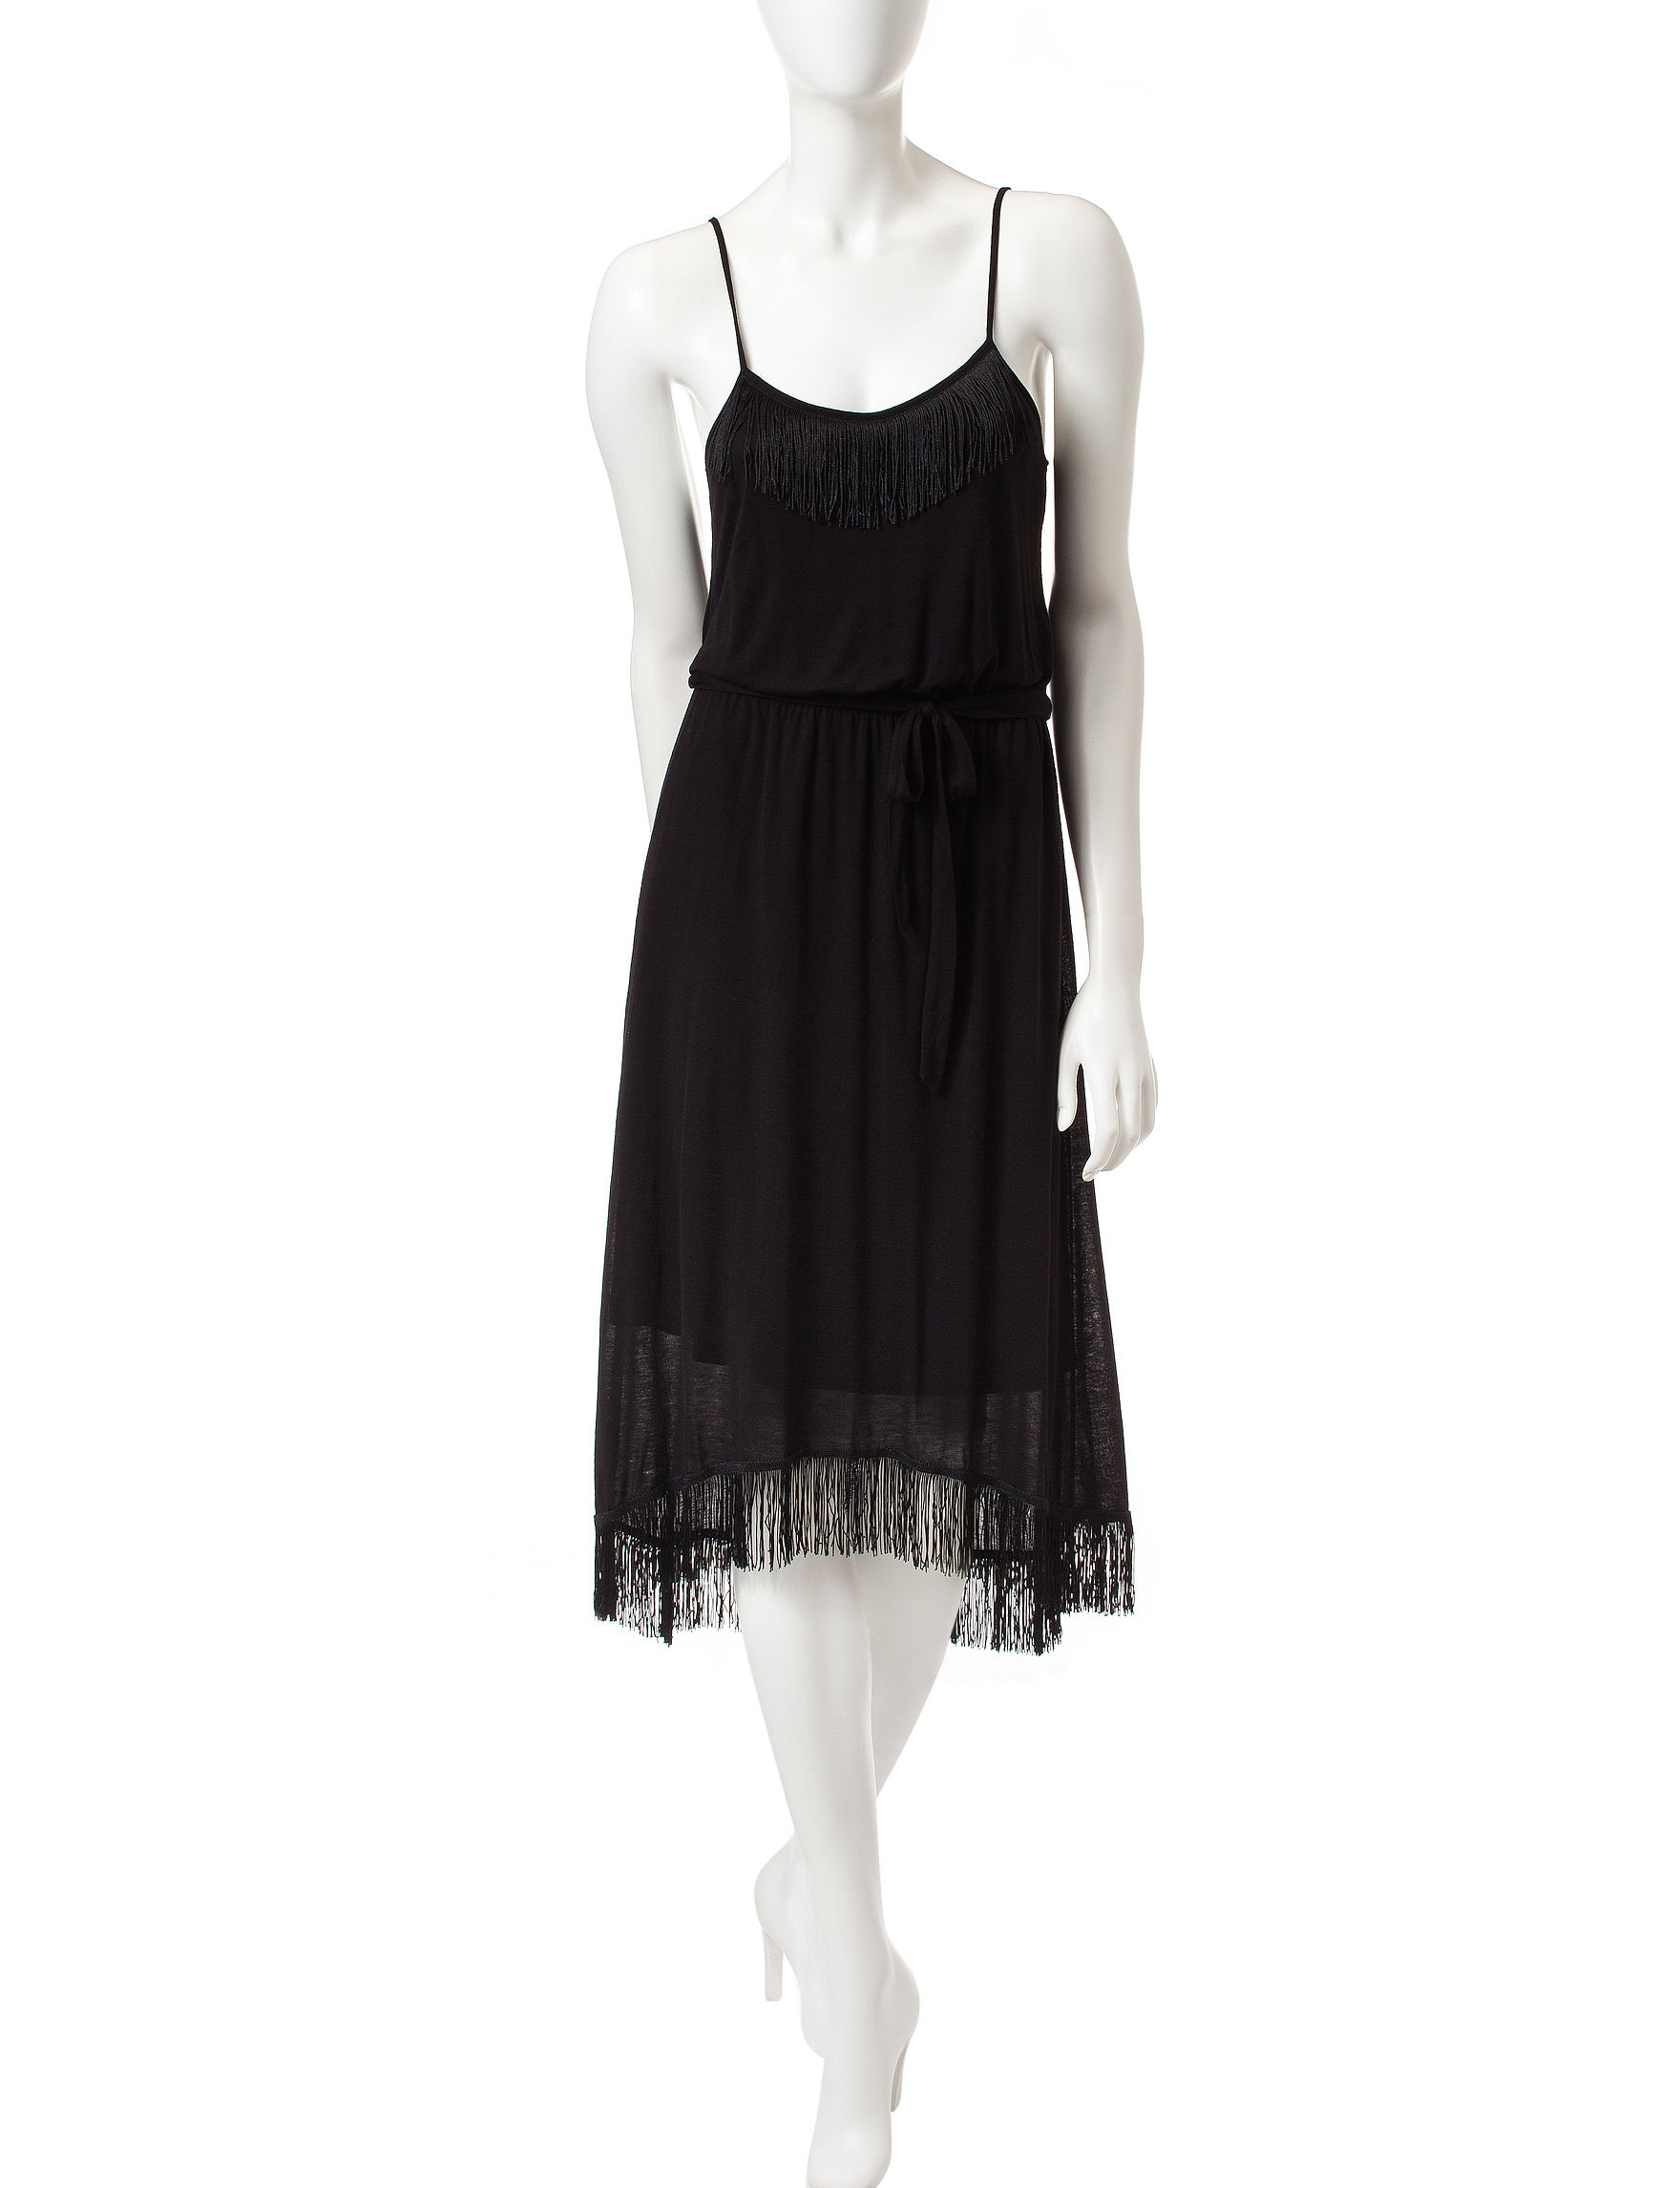 Kensie Black Cocktail & Party A-line Dresses